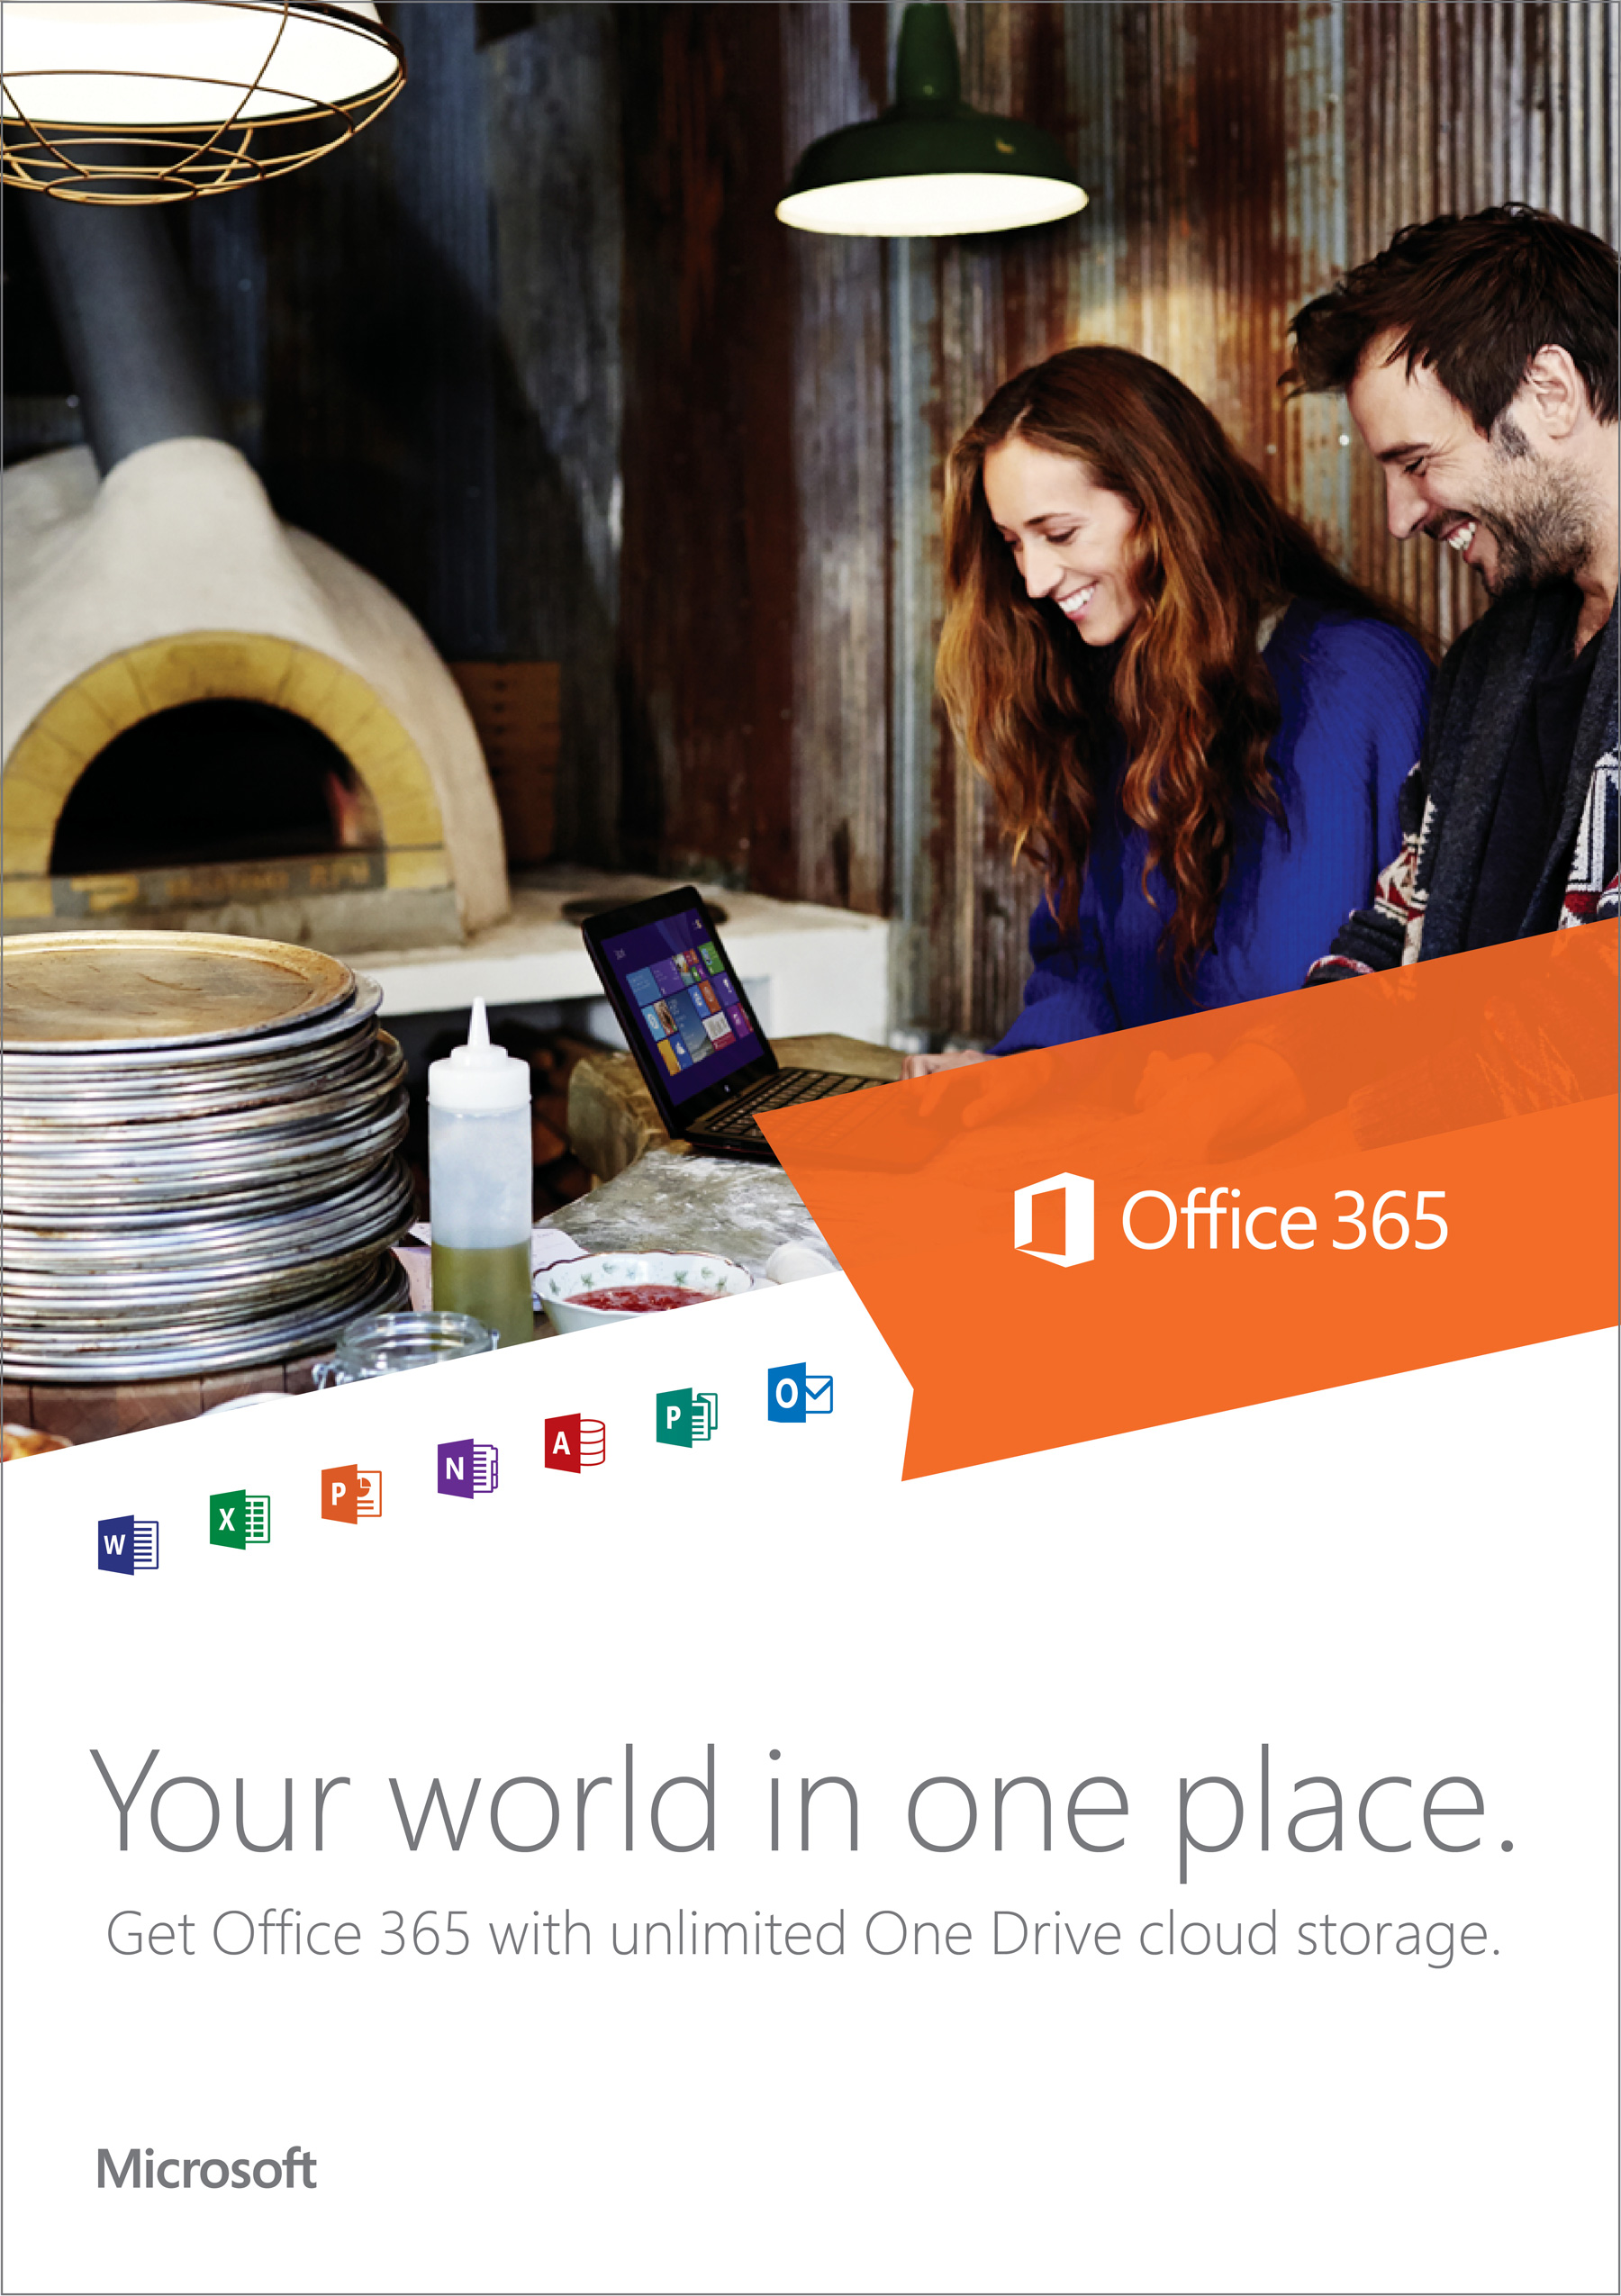 Microsoft Office 365 - Poster Campaign